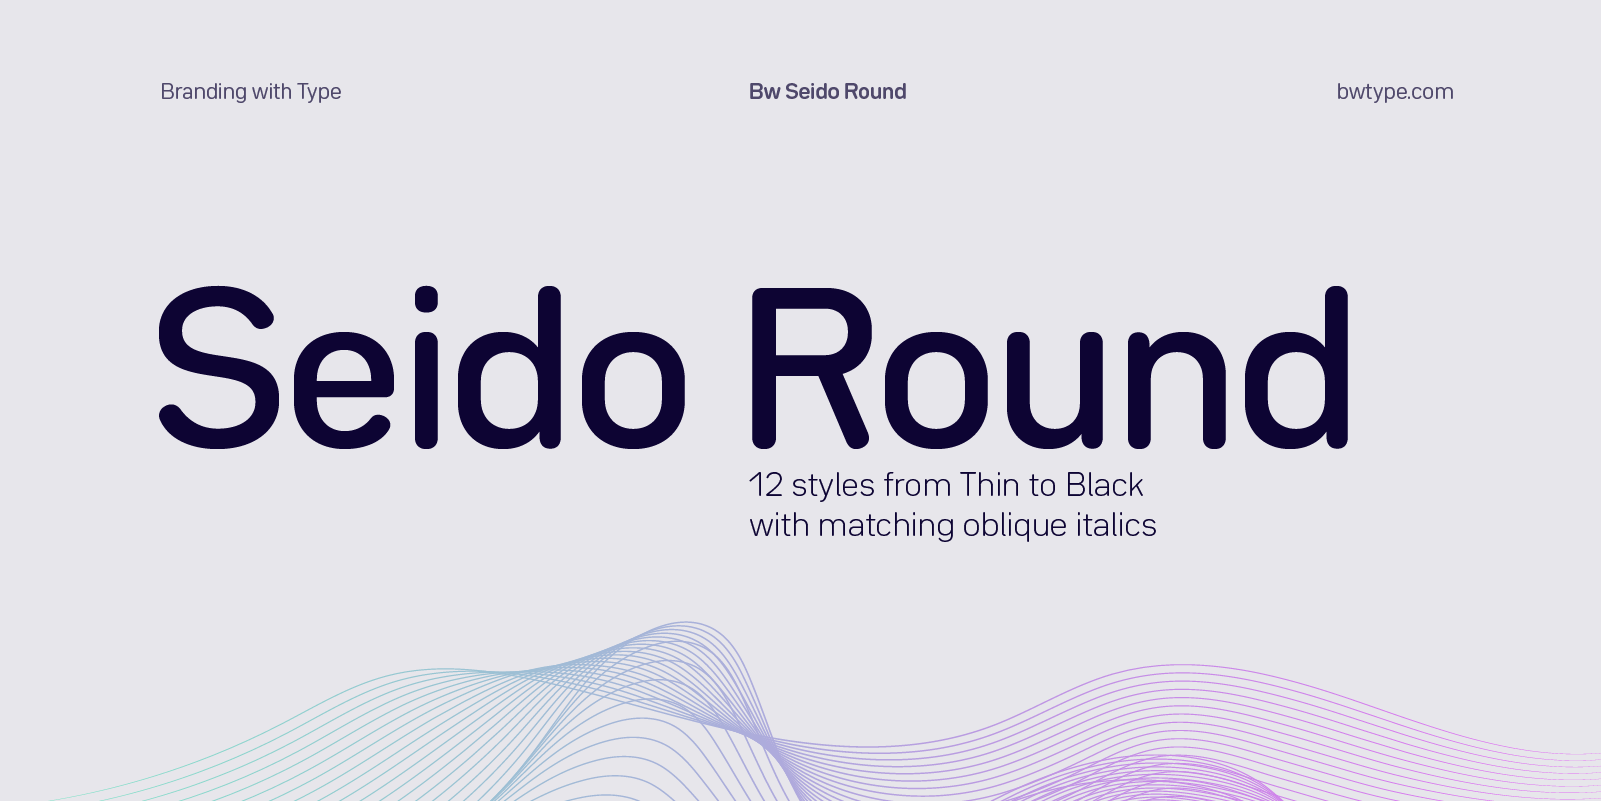 Bw Seido Round - Fonts - Branding with Type